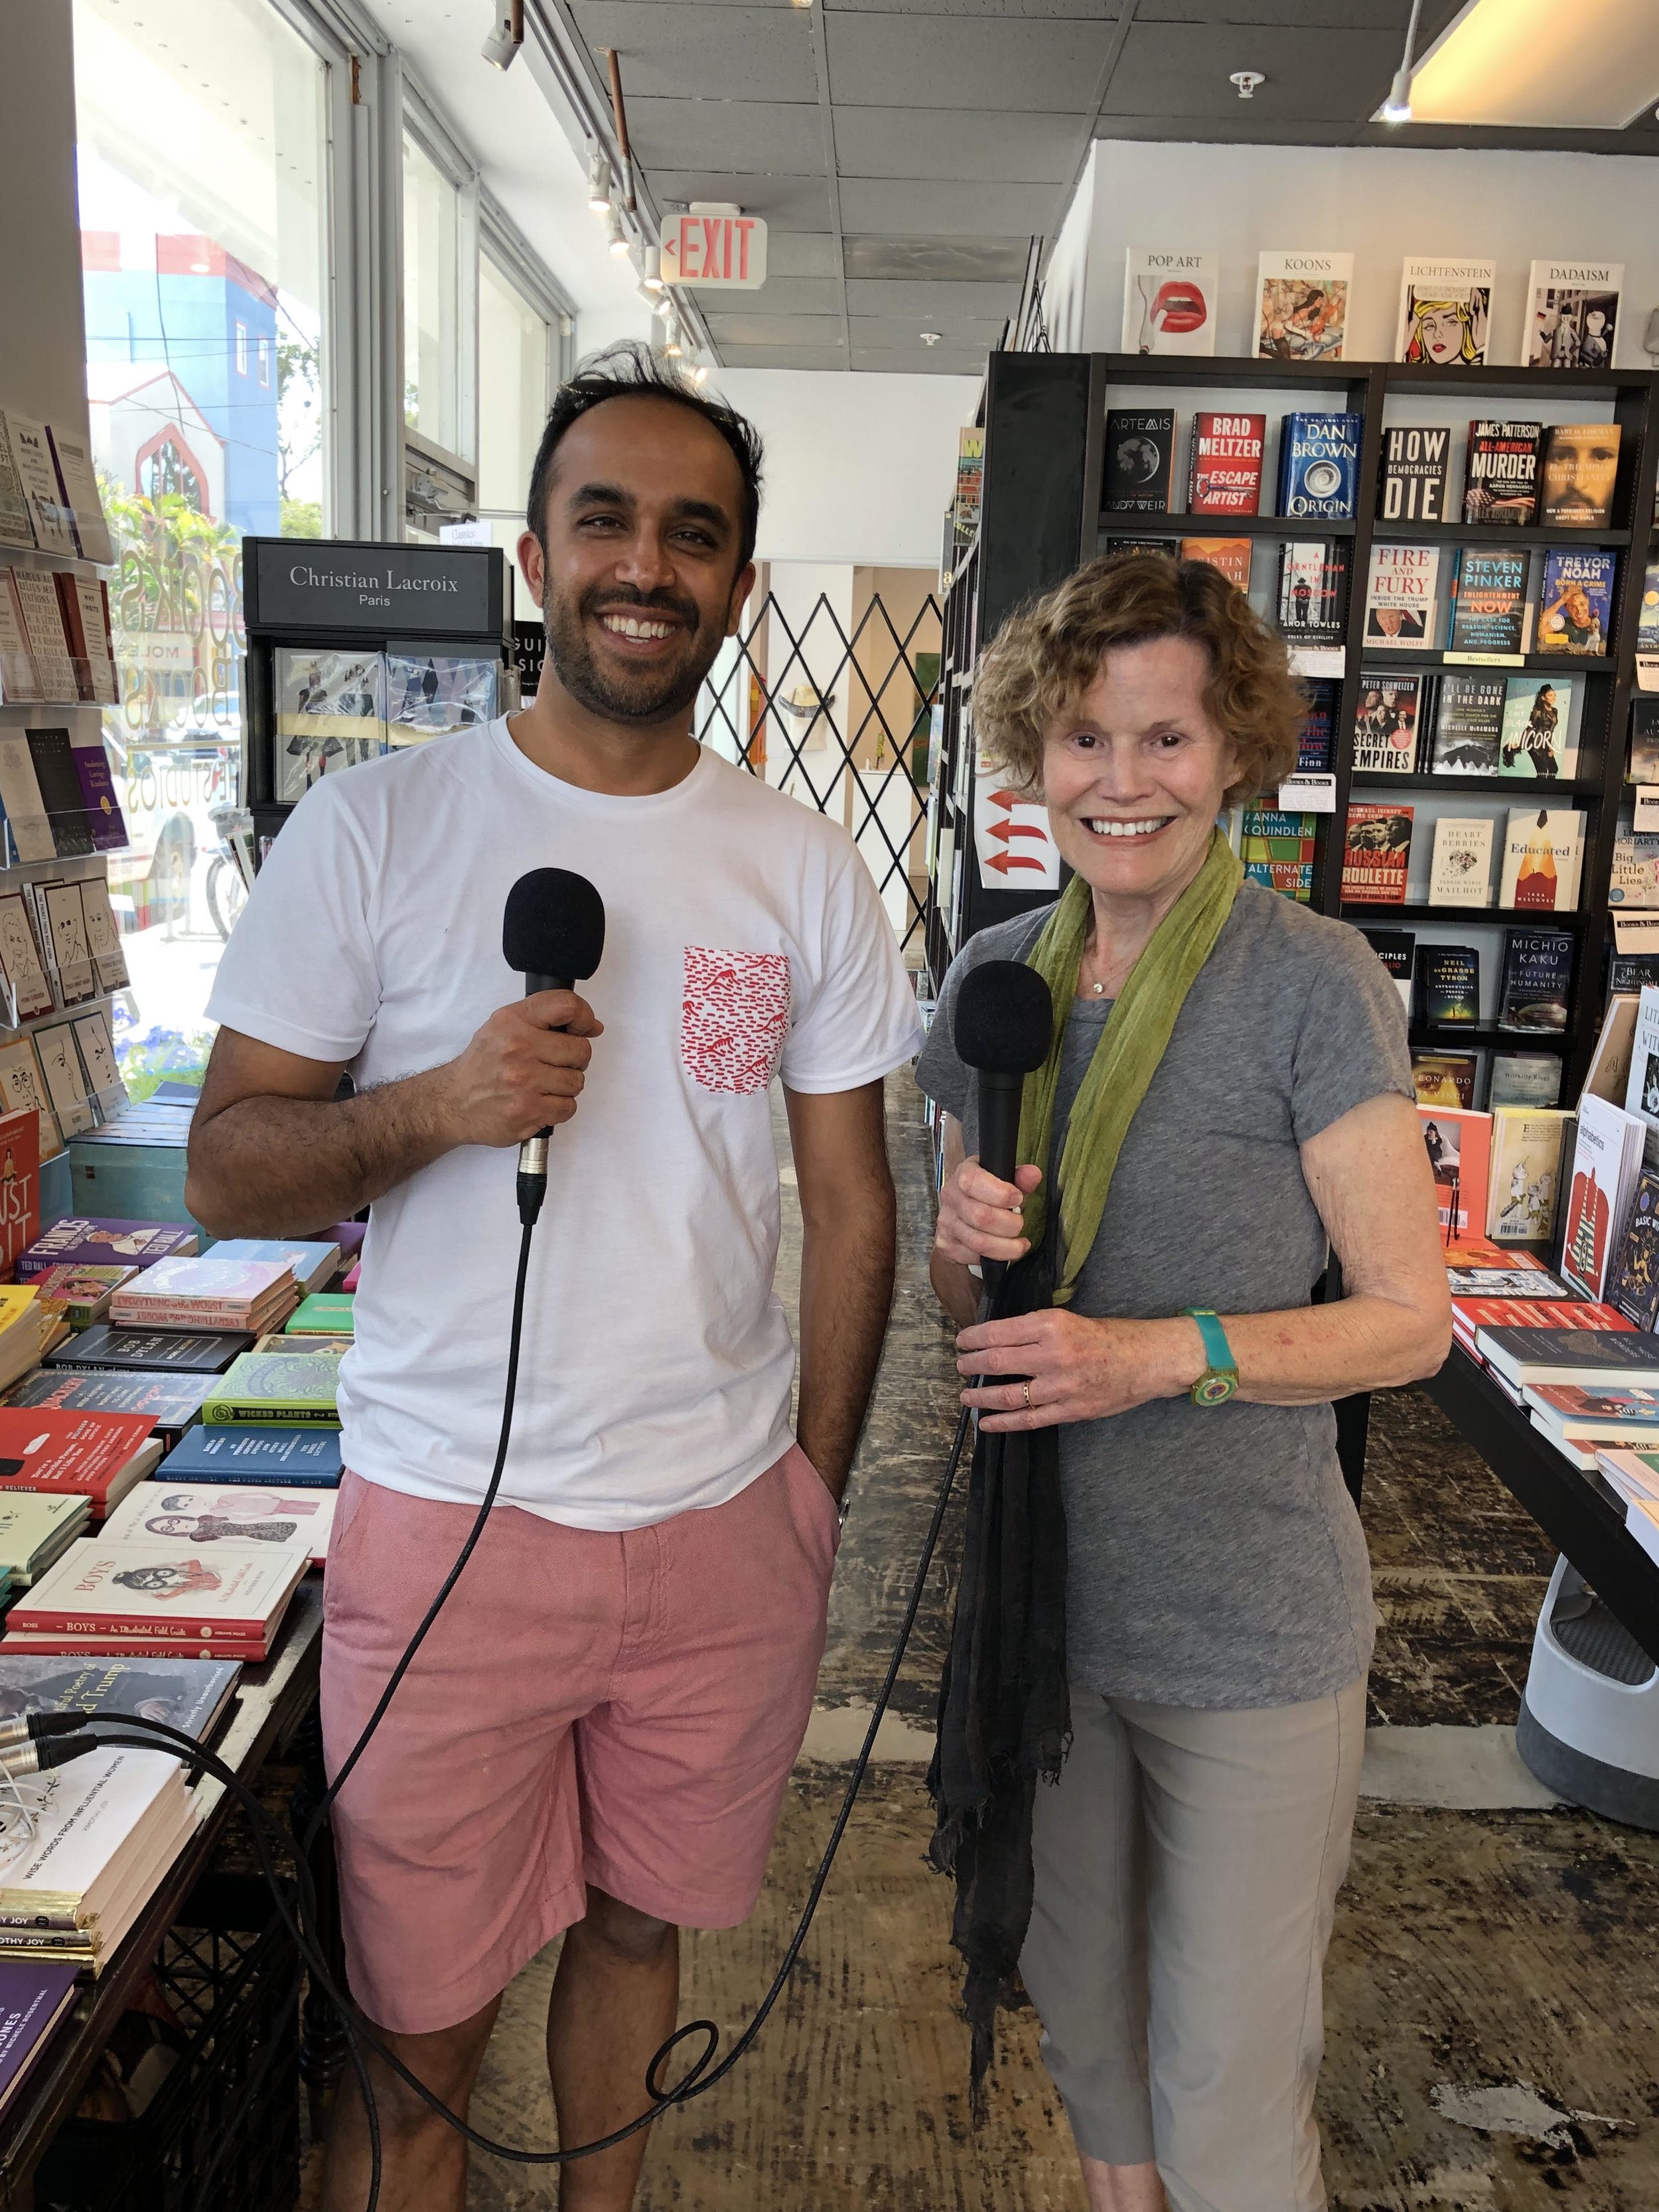 Me and the wonderful Judy Blume when she was giving me a tour of her bookstore in Key West.